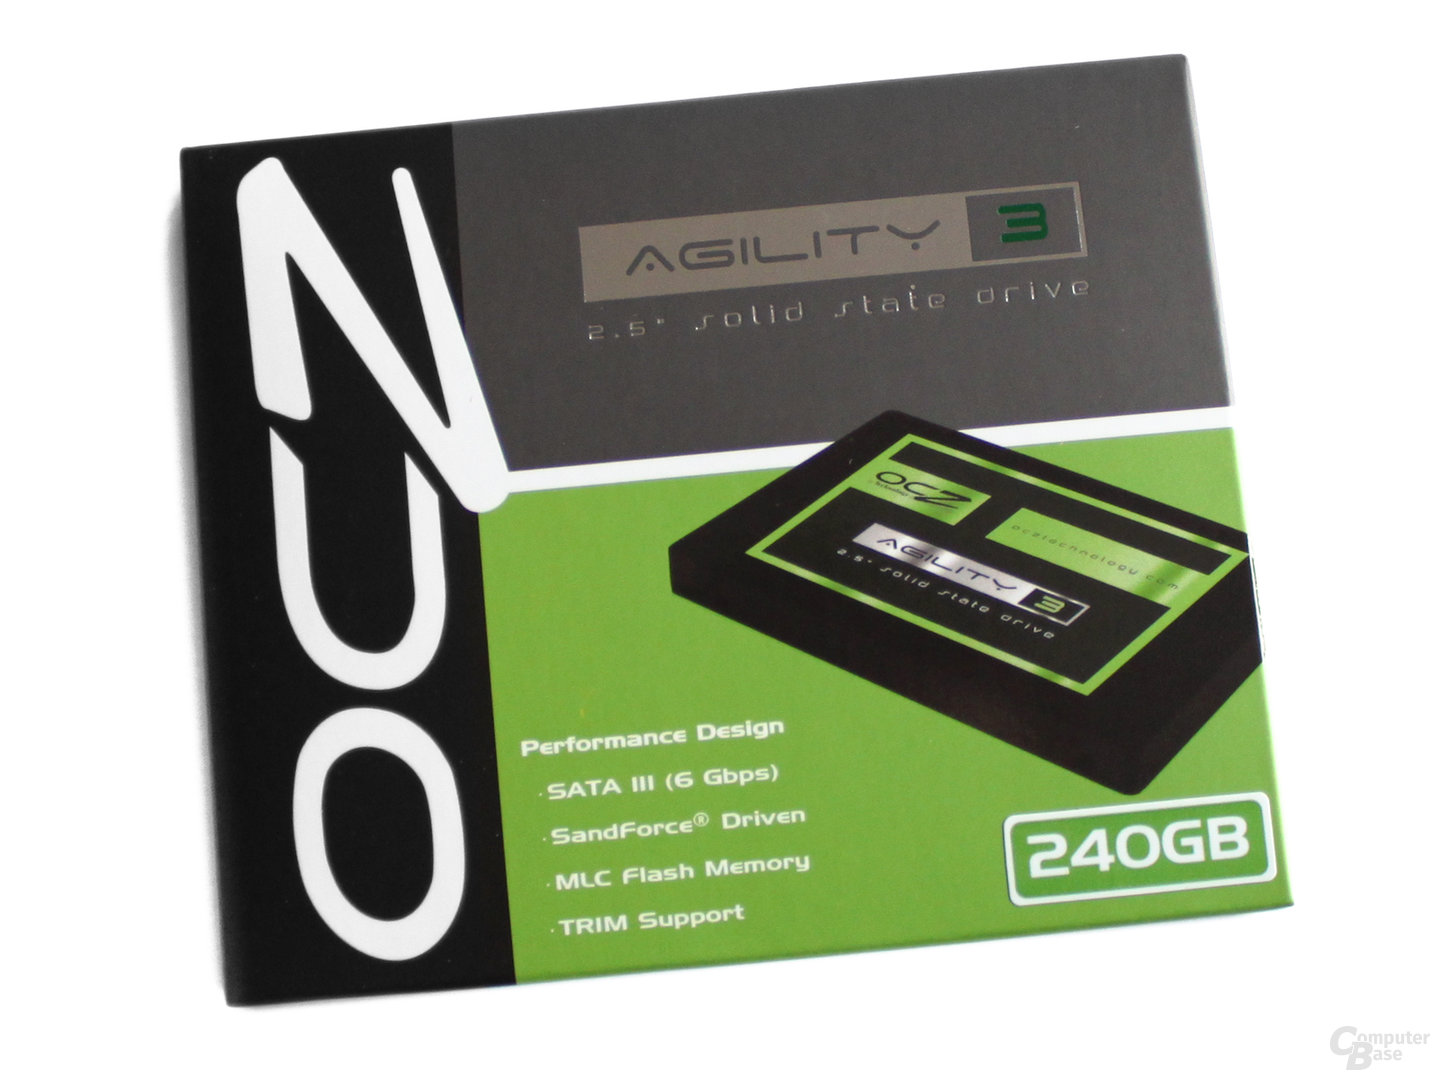 Agility 3 Verpackung